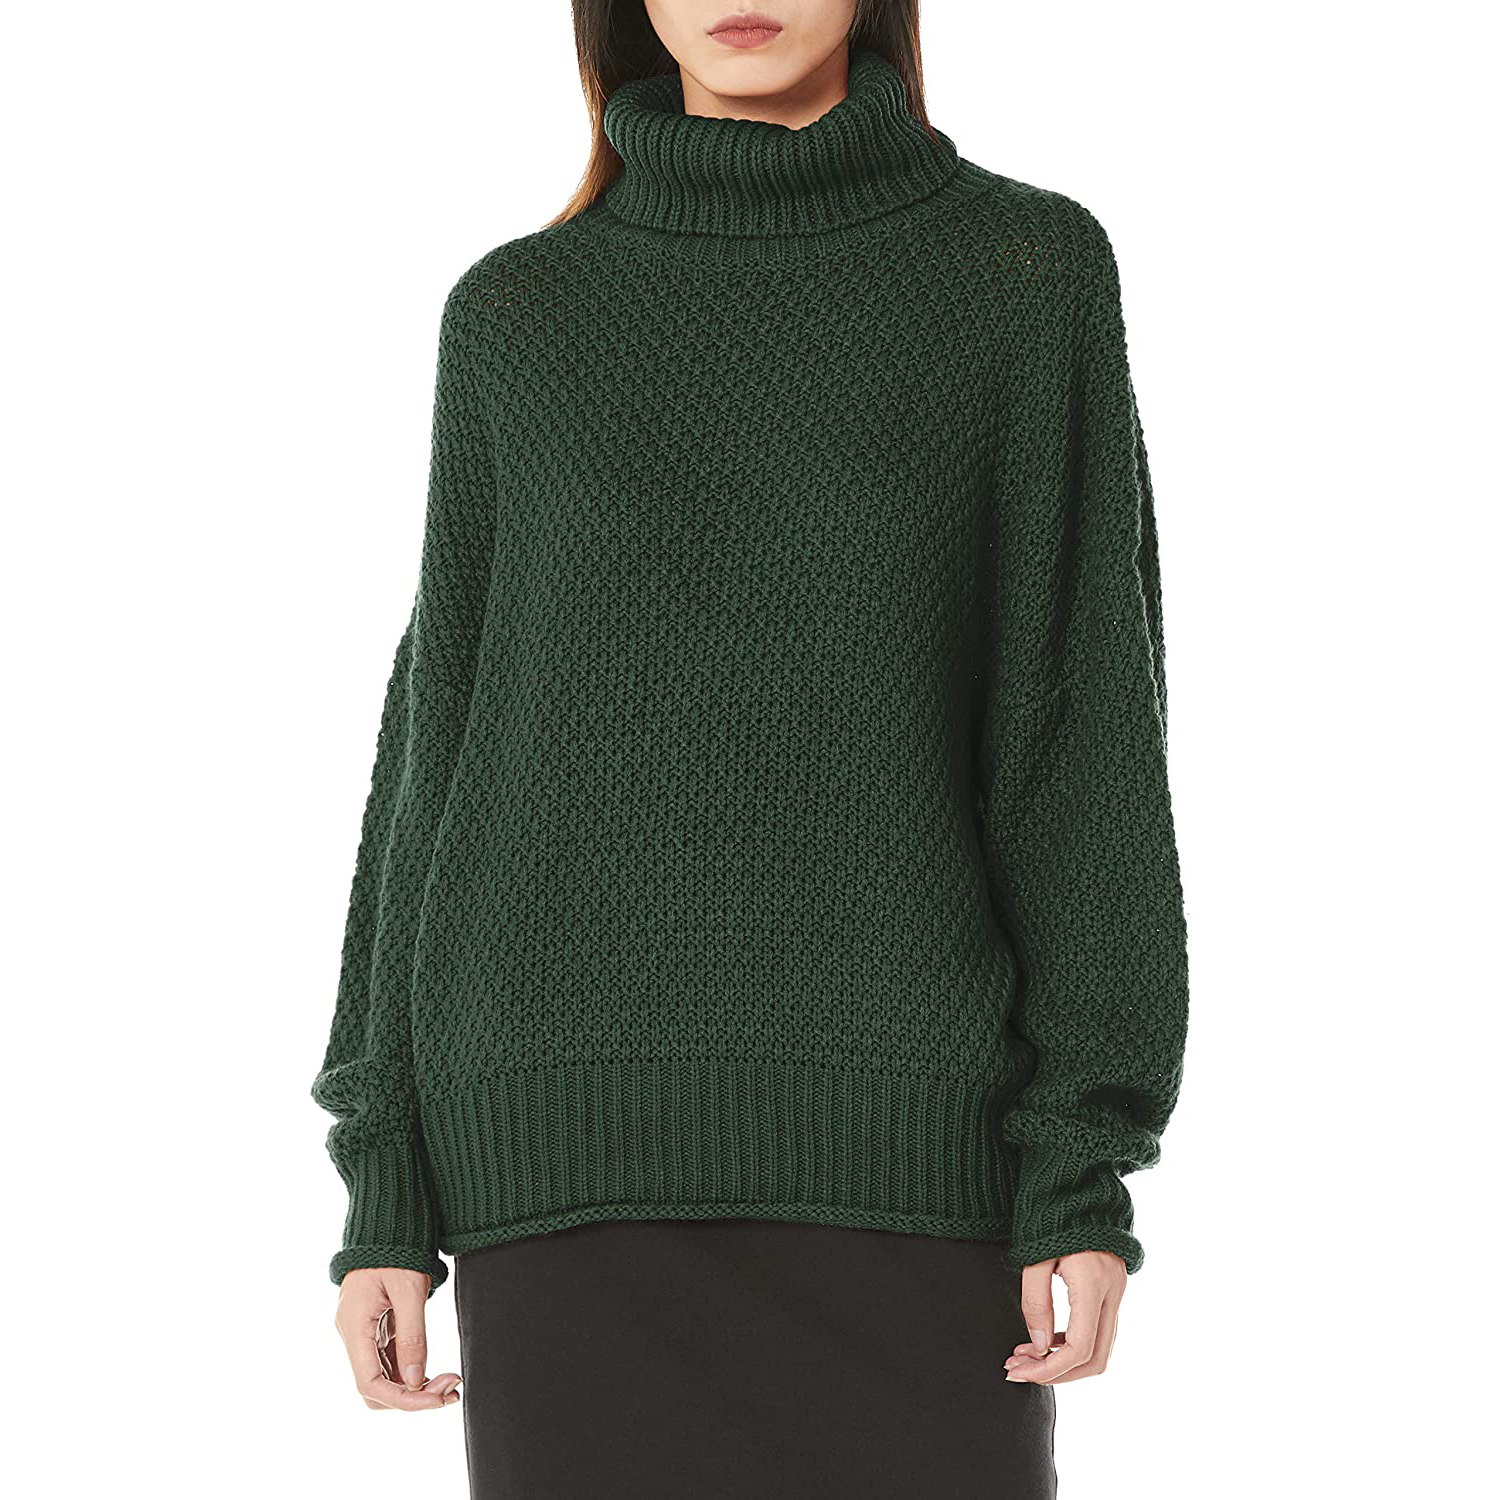 Women Casual Turtleneck Long Sleeve Chunky Knitted Pullover Sweaters